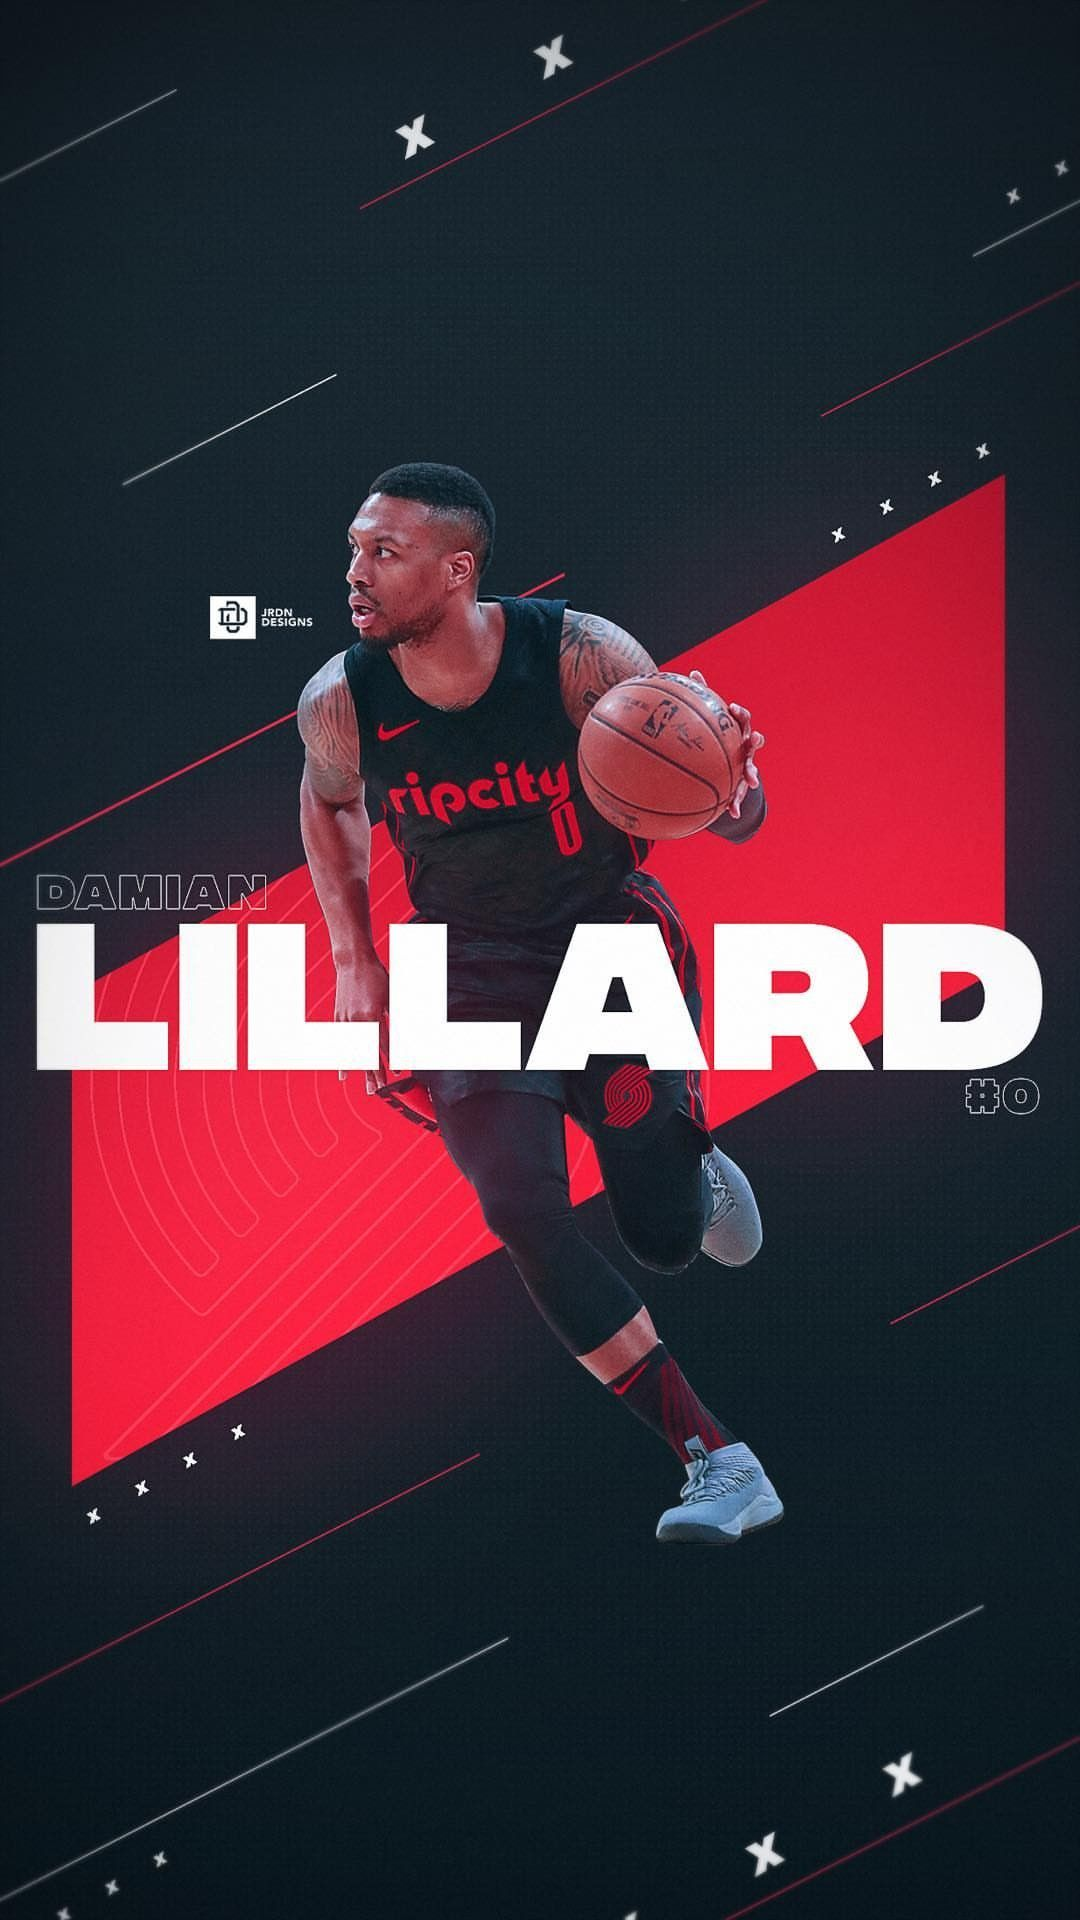 Damian Lillard wallpaper Nba wallpapers, Nba sports